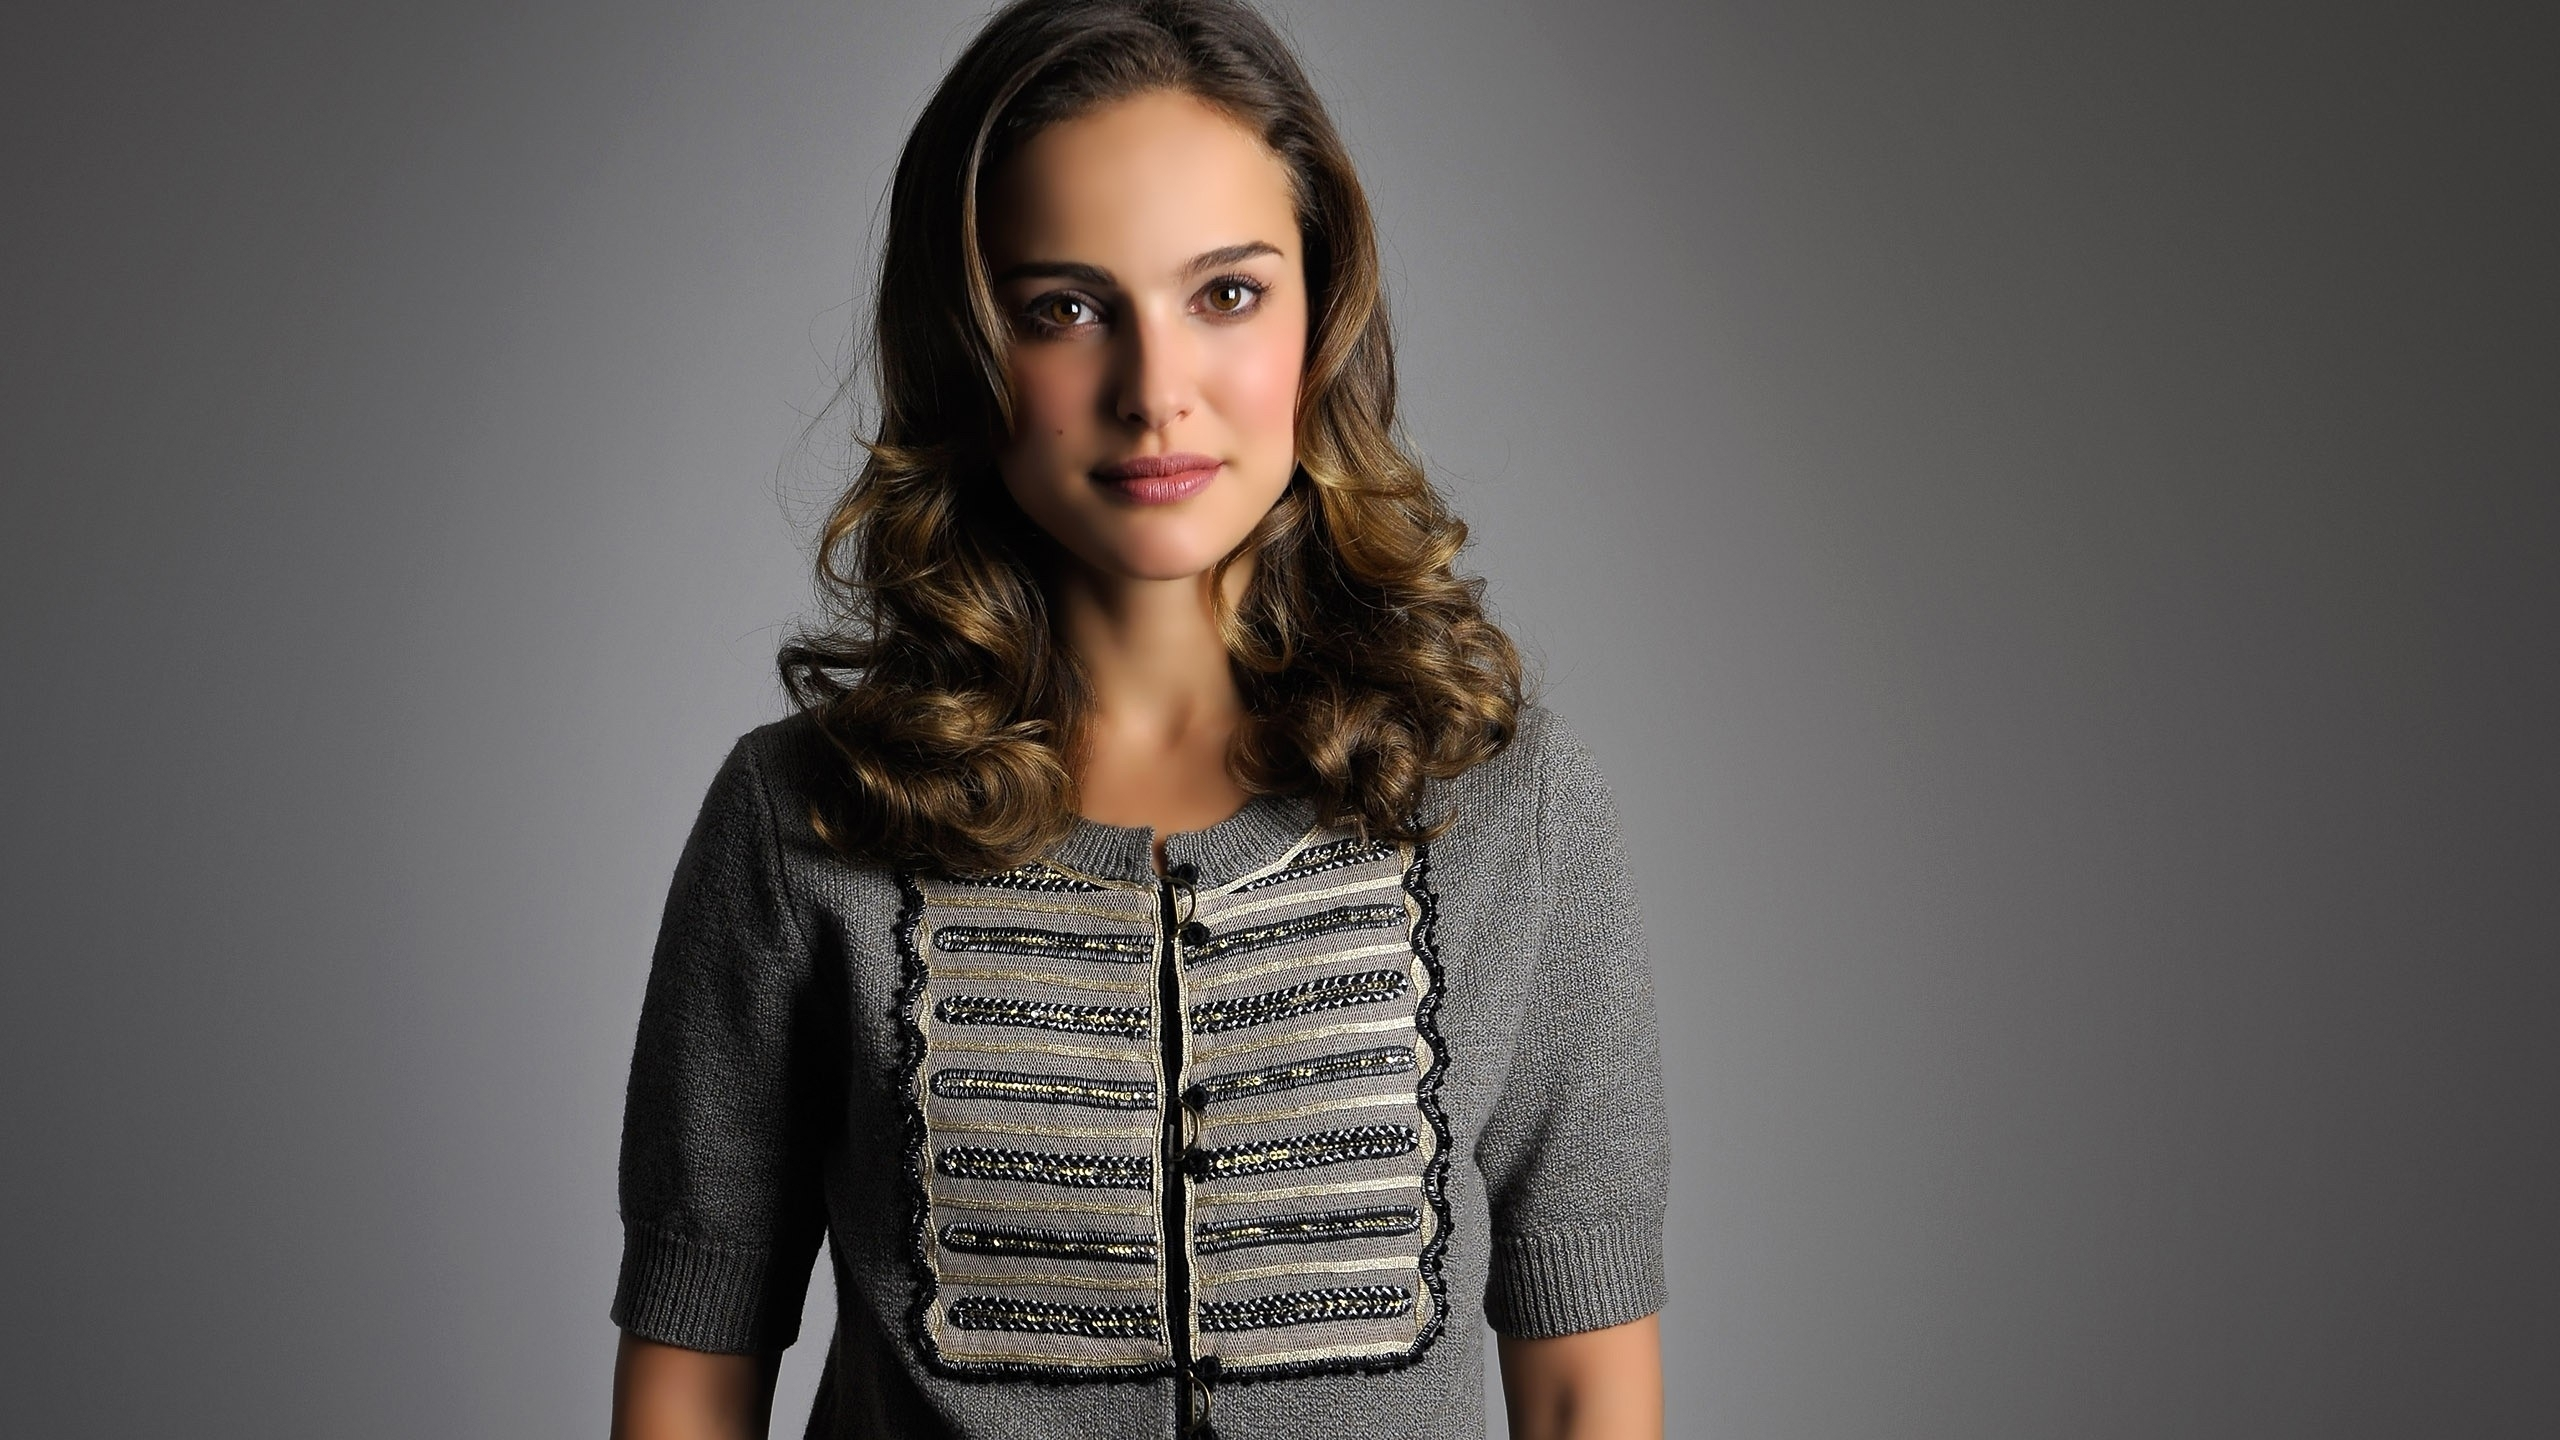 Natalie Portman Hd Wallpaper: Natalie Portman Wallpapers, Pictures, Images